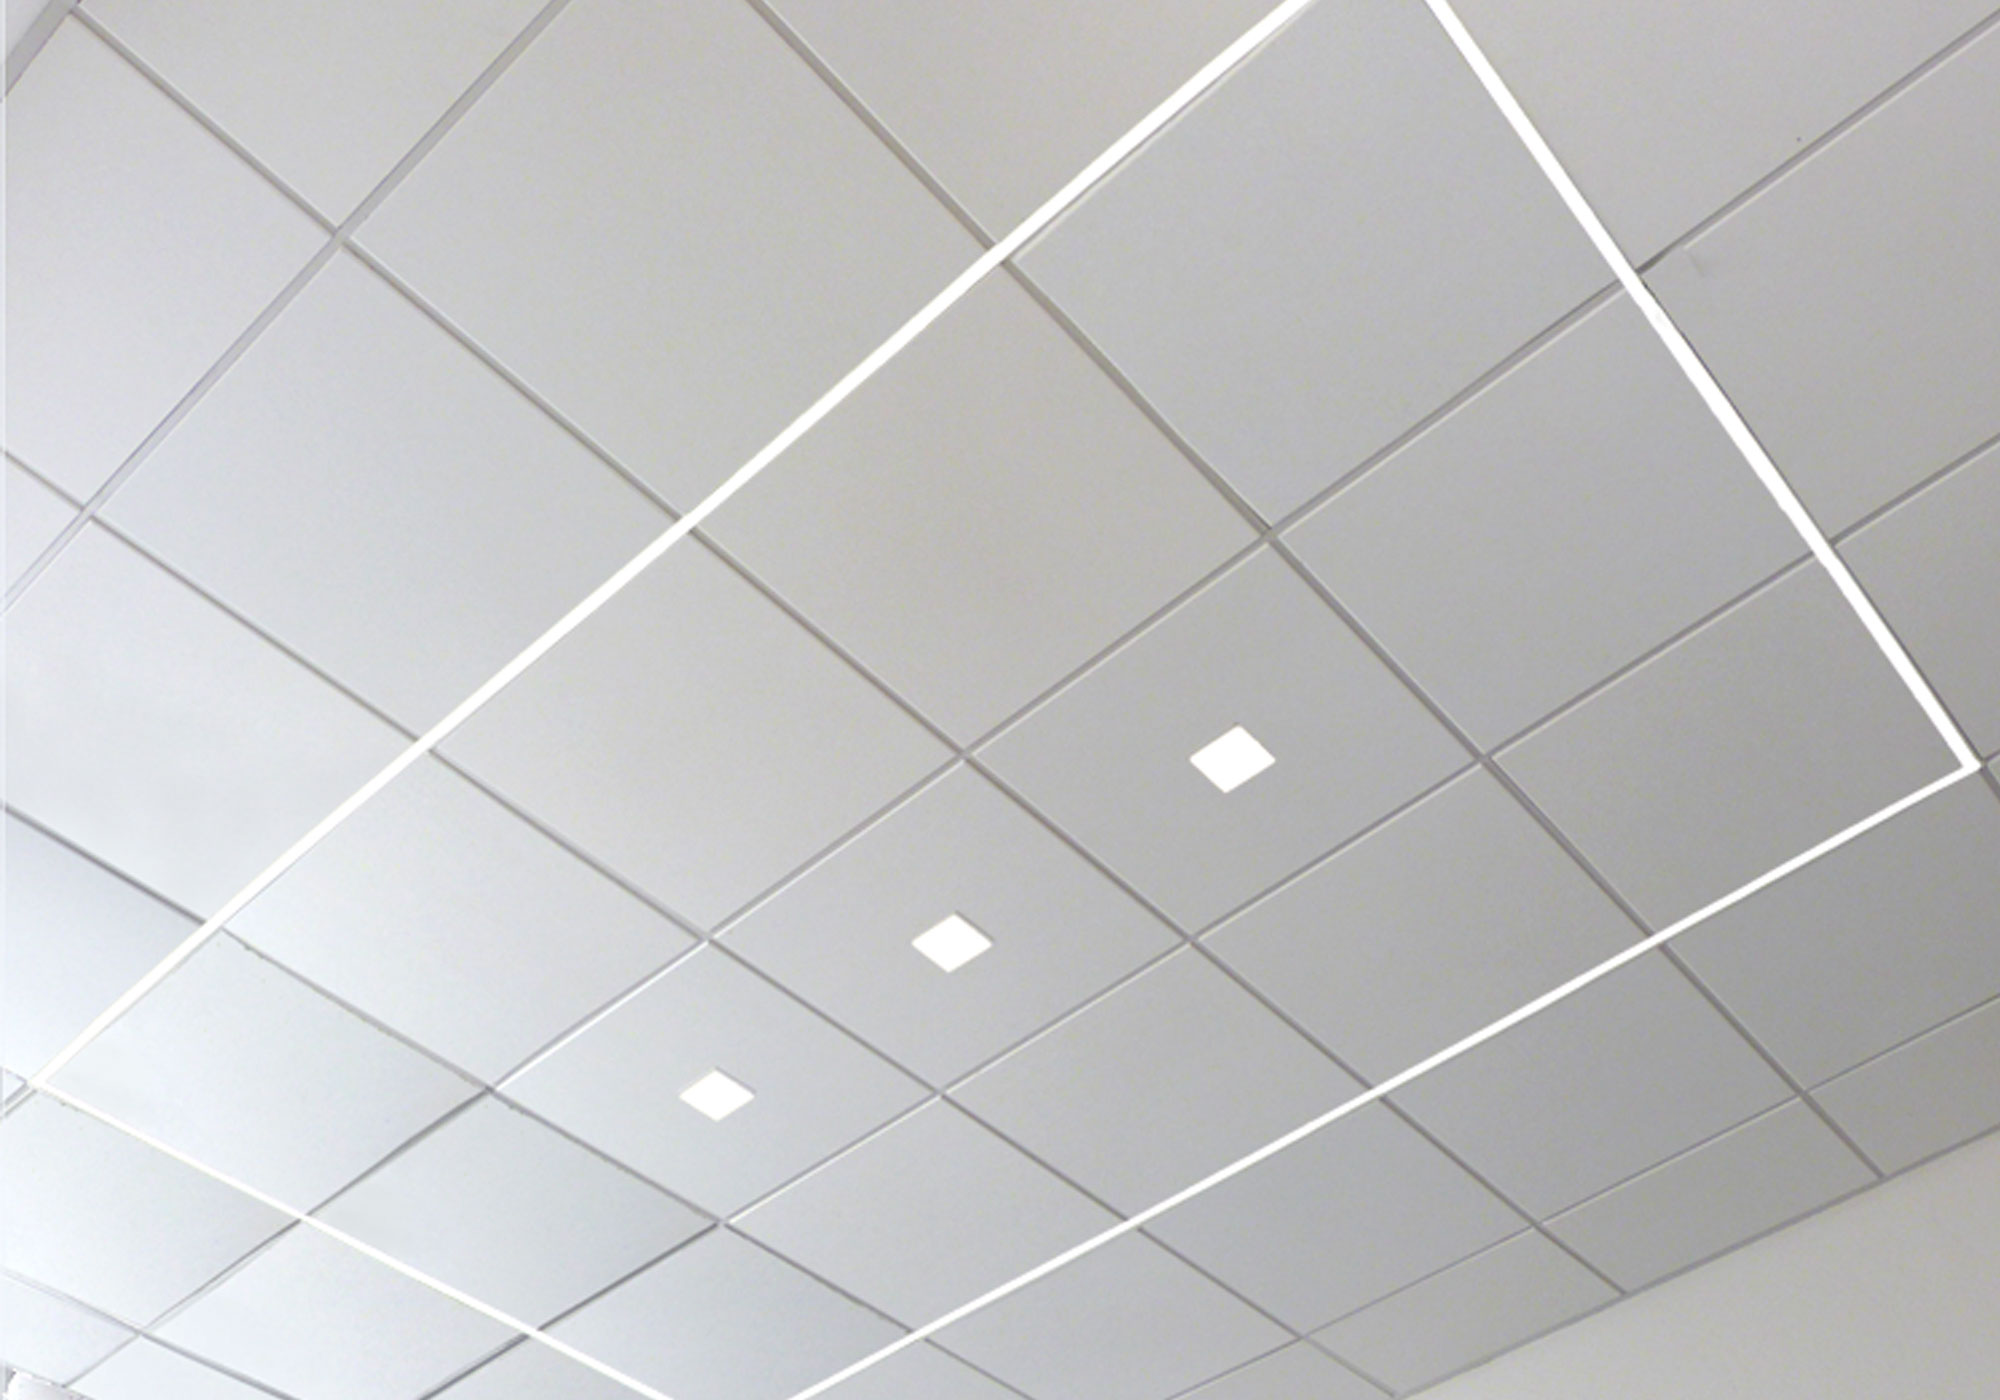 Airelight™ Linear SC 0.5, Airelight™ Square 3000K CCT Directly Attached Suspended Ceiling T-Grid, Embedded Square in Ceiling Panel